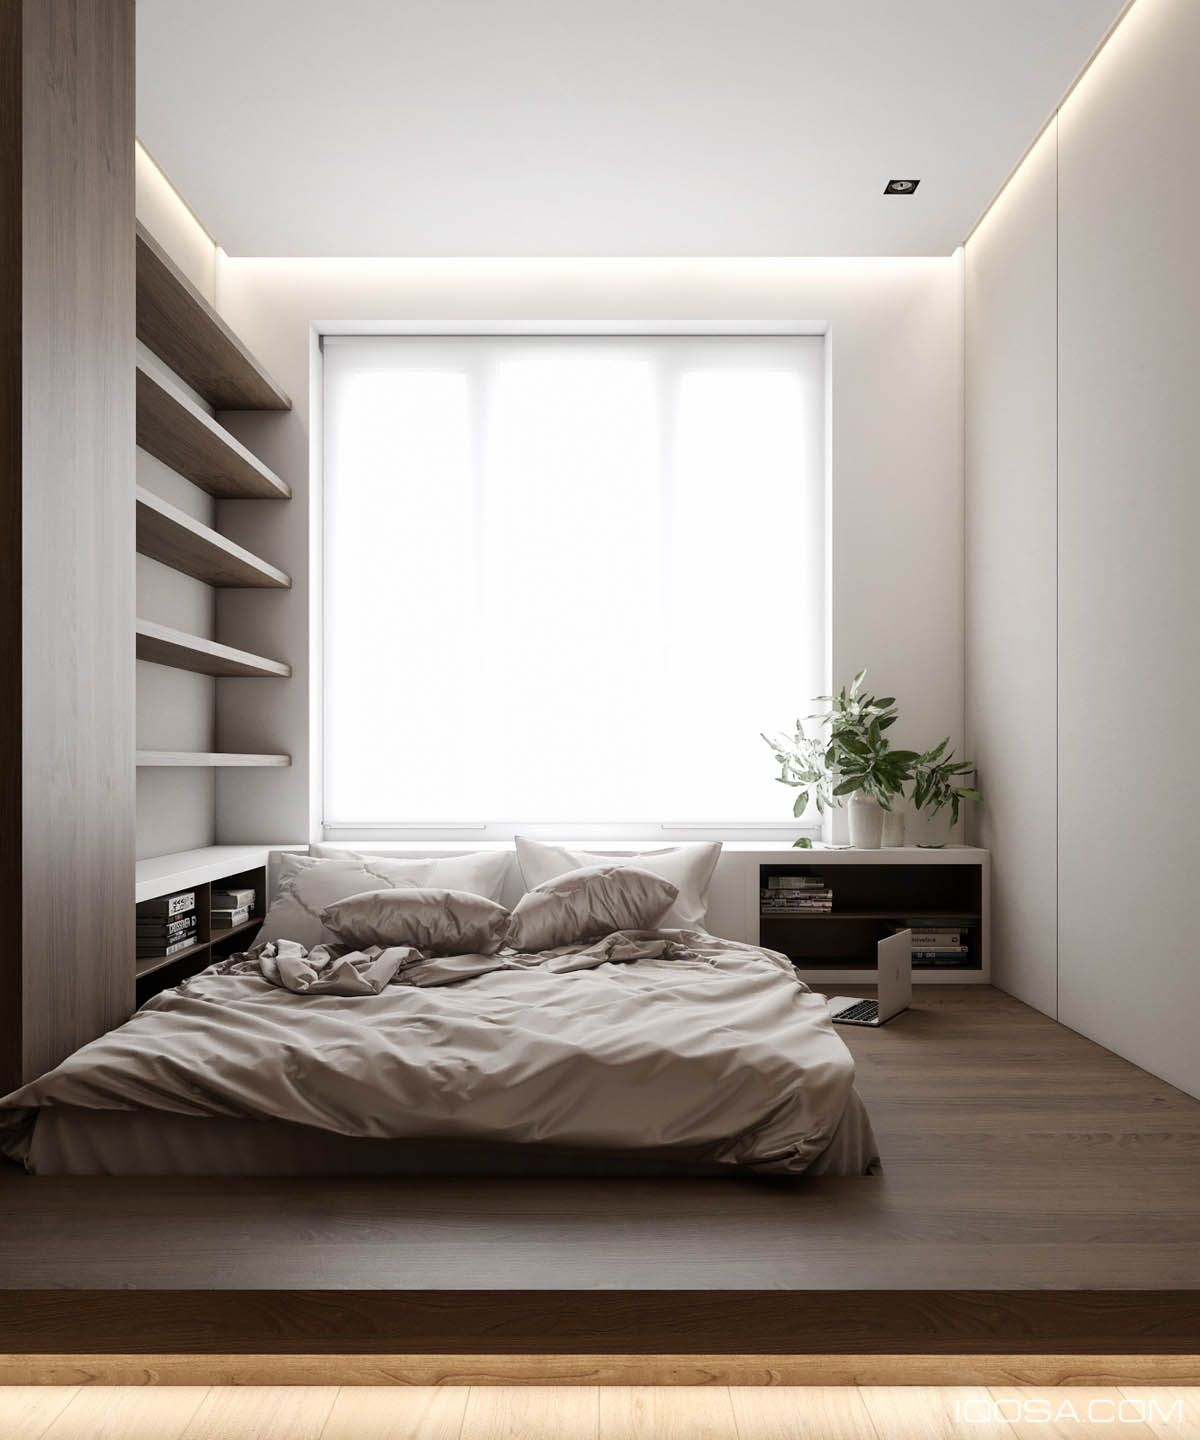 20 Best Small Modern Bedroom Ideas: Home Design Under 60 Square Meters: 3 Examples That